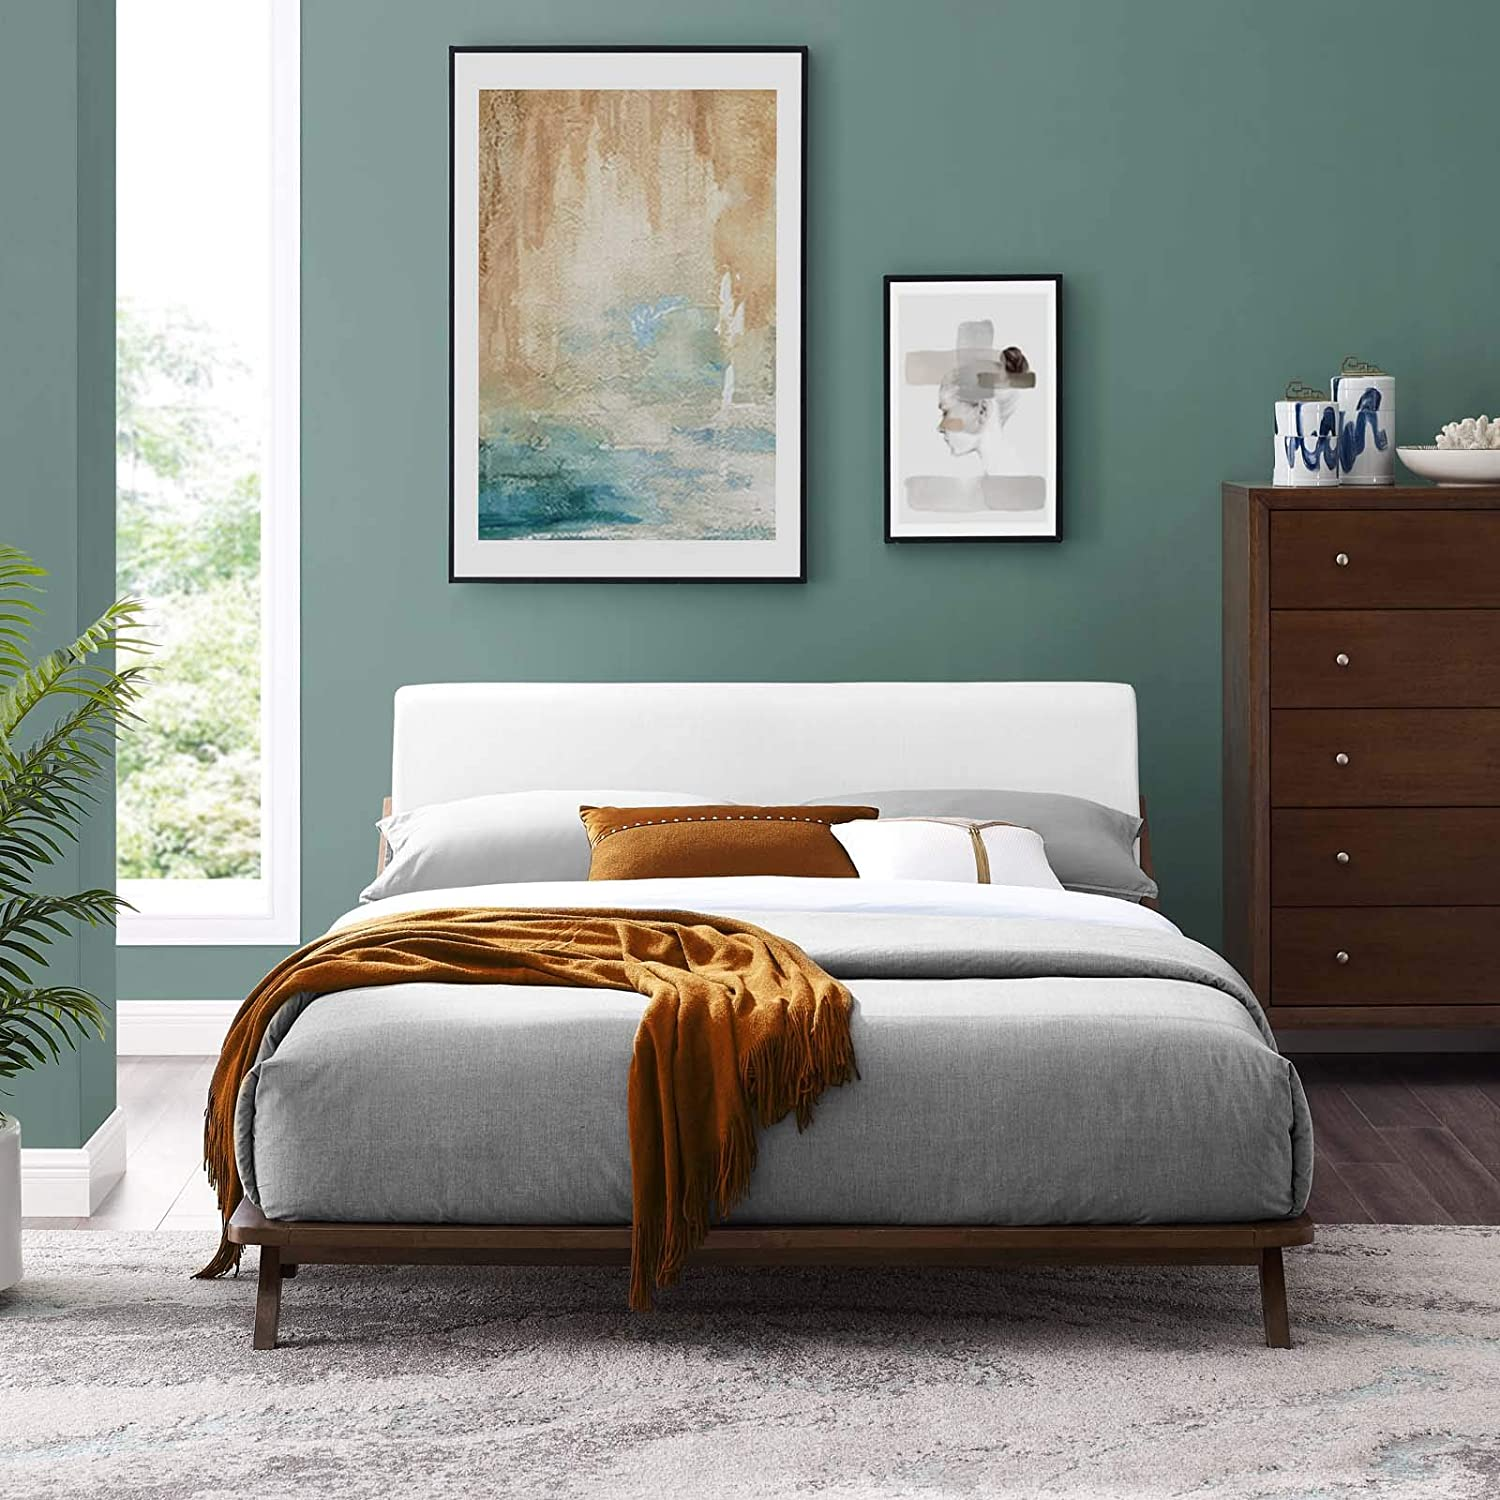 7fa5e76d57 Amazon.com: Modway MOD-6047-CAP-WHI Luella Queen Upholstered Fabric Platform  Bed Cappuccino White: Kitchen & Dining